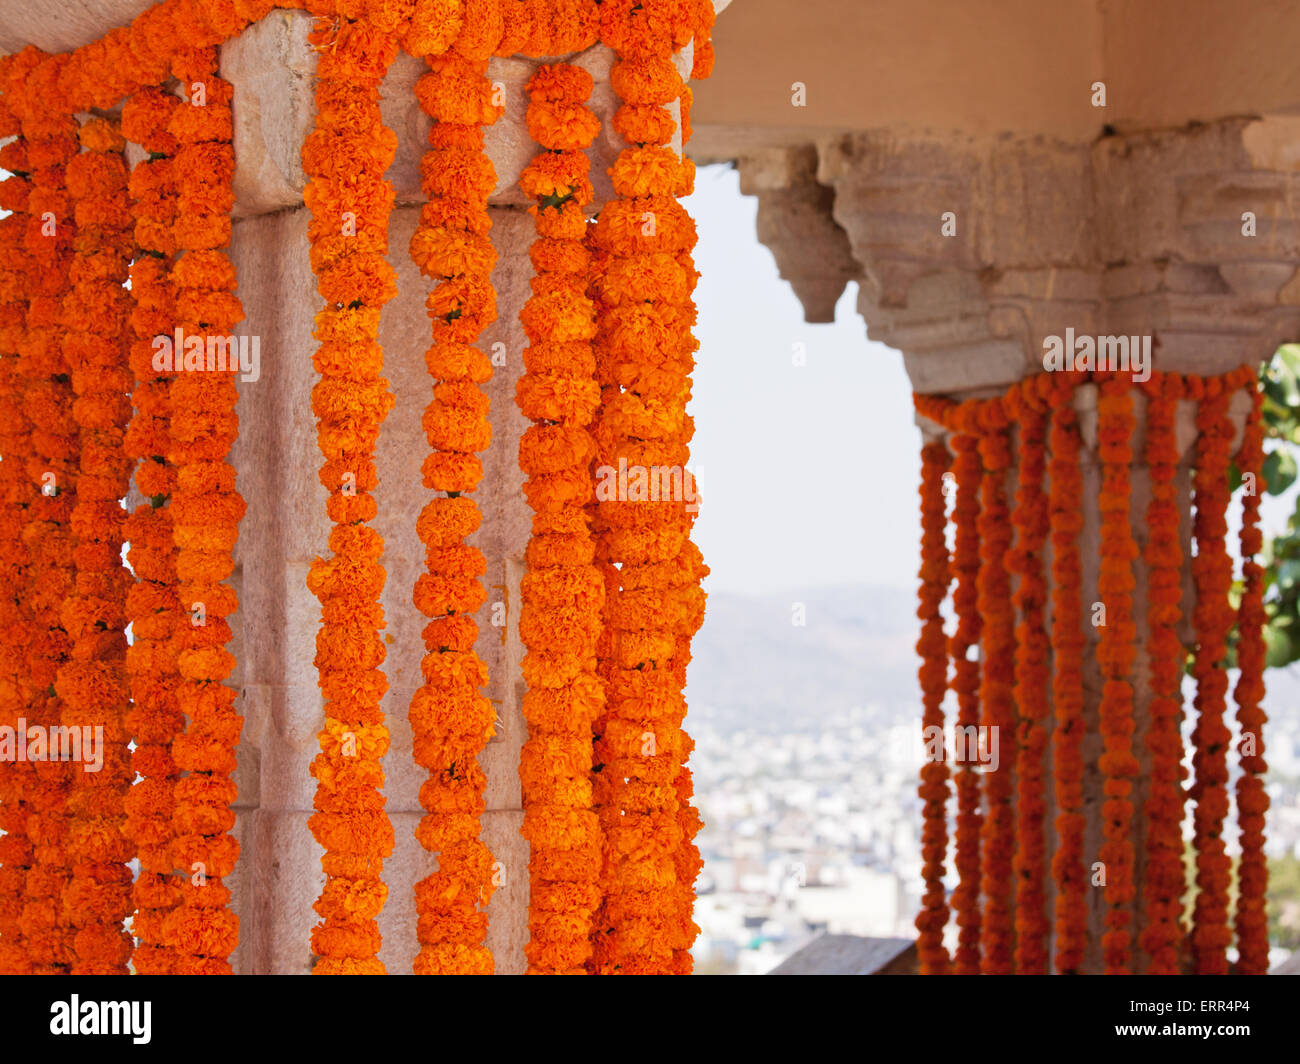 Marigold Flowers India Stock Photos Marigold Flowers India Stock